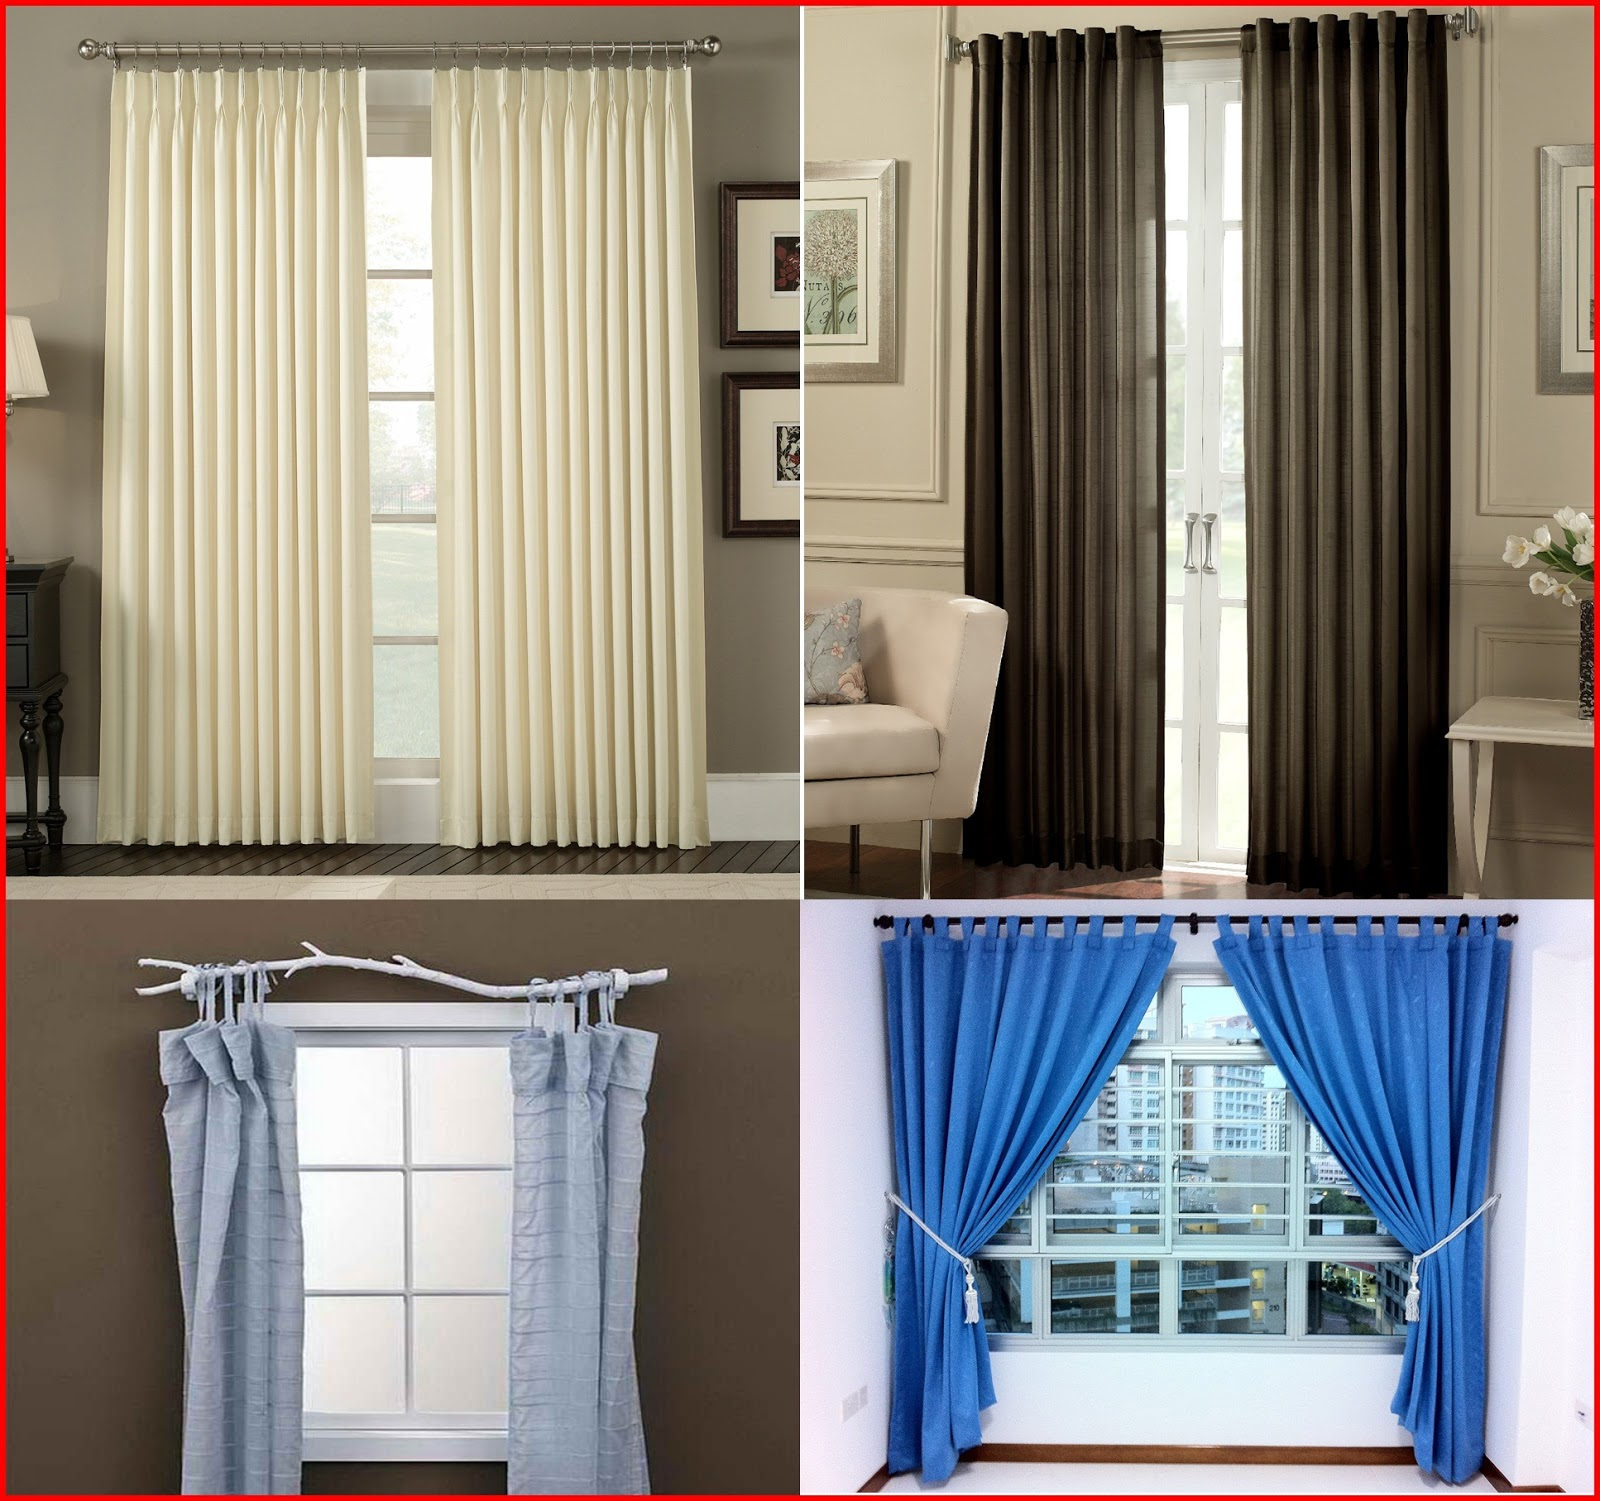 How to choose curtains for living room window